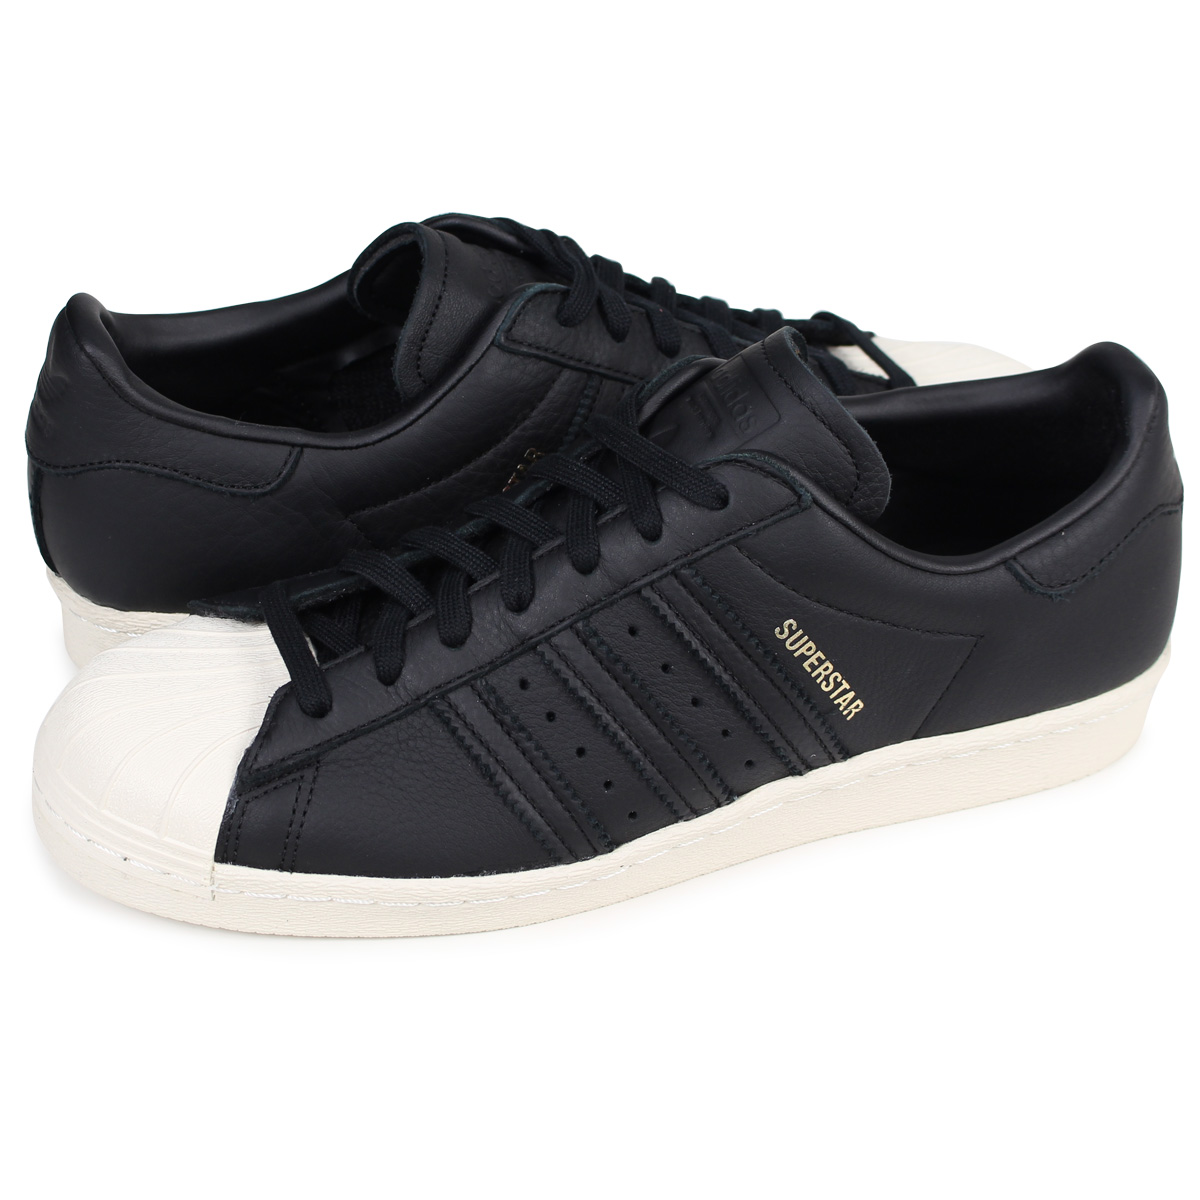 sneakers for cheap a2cc0 52696 Product Information